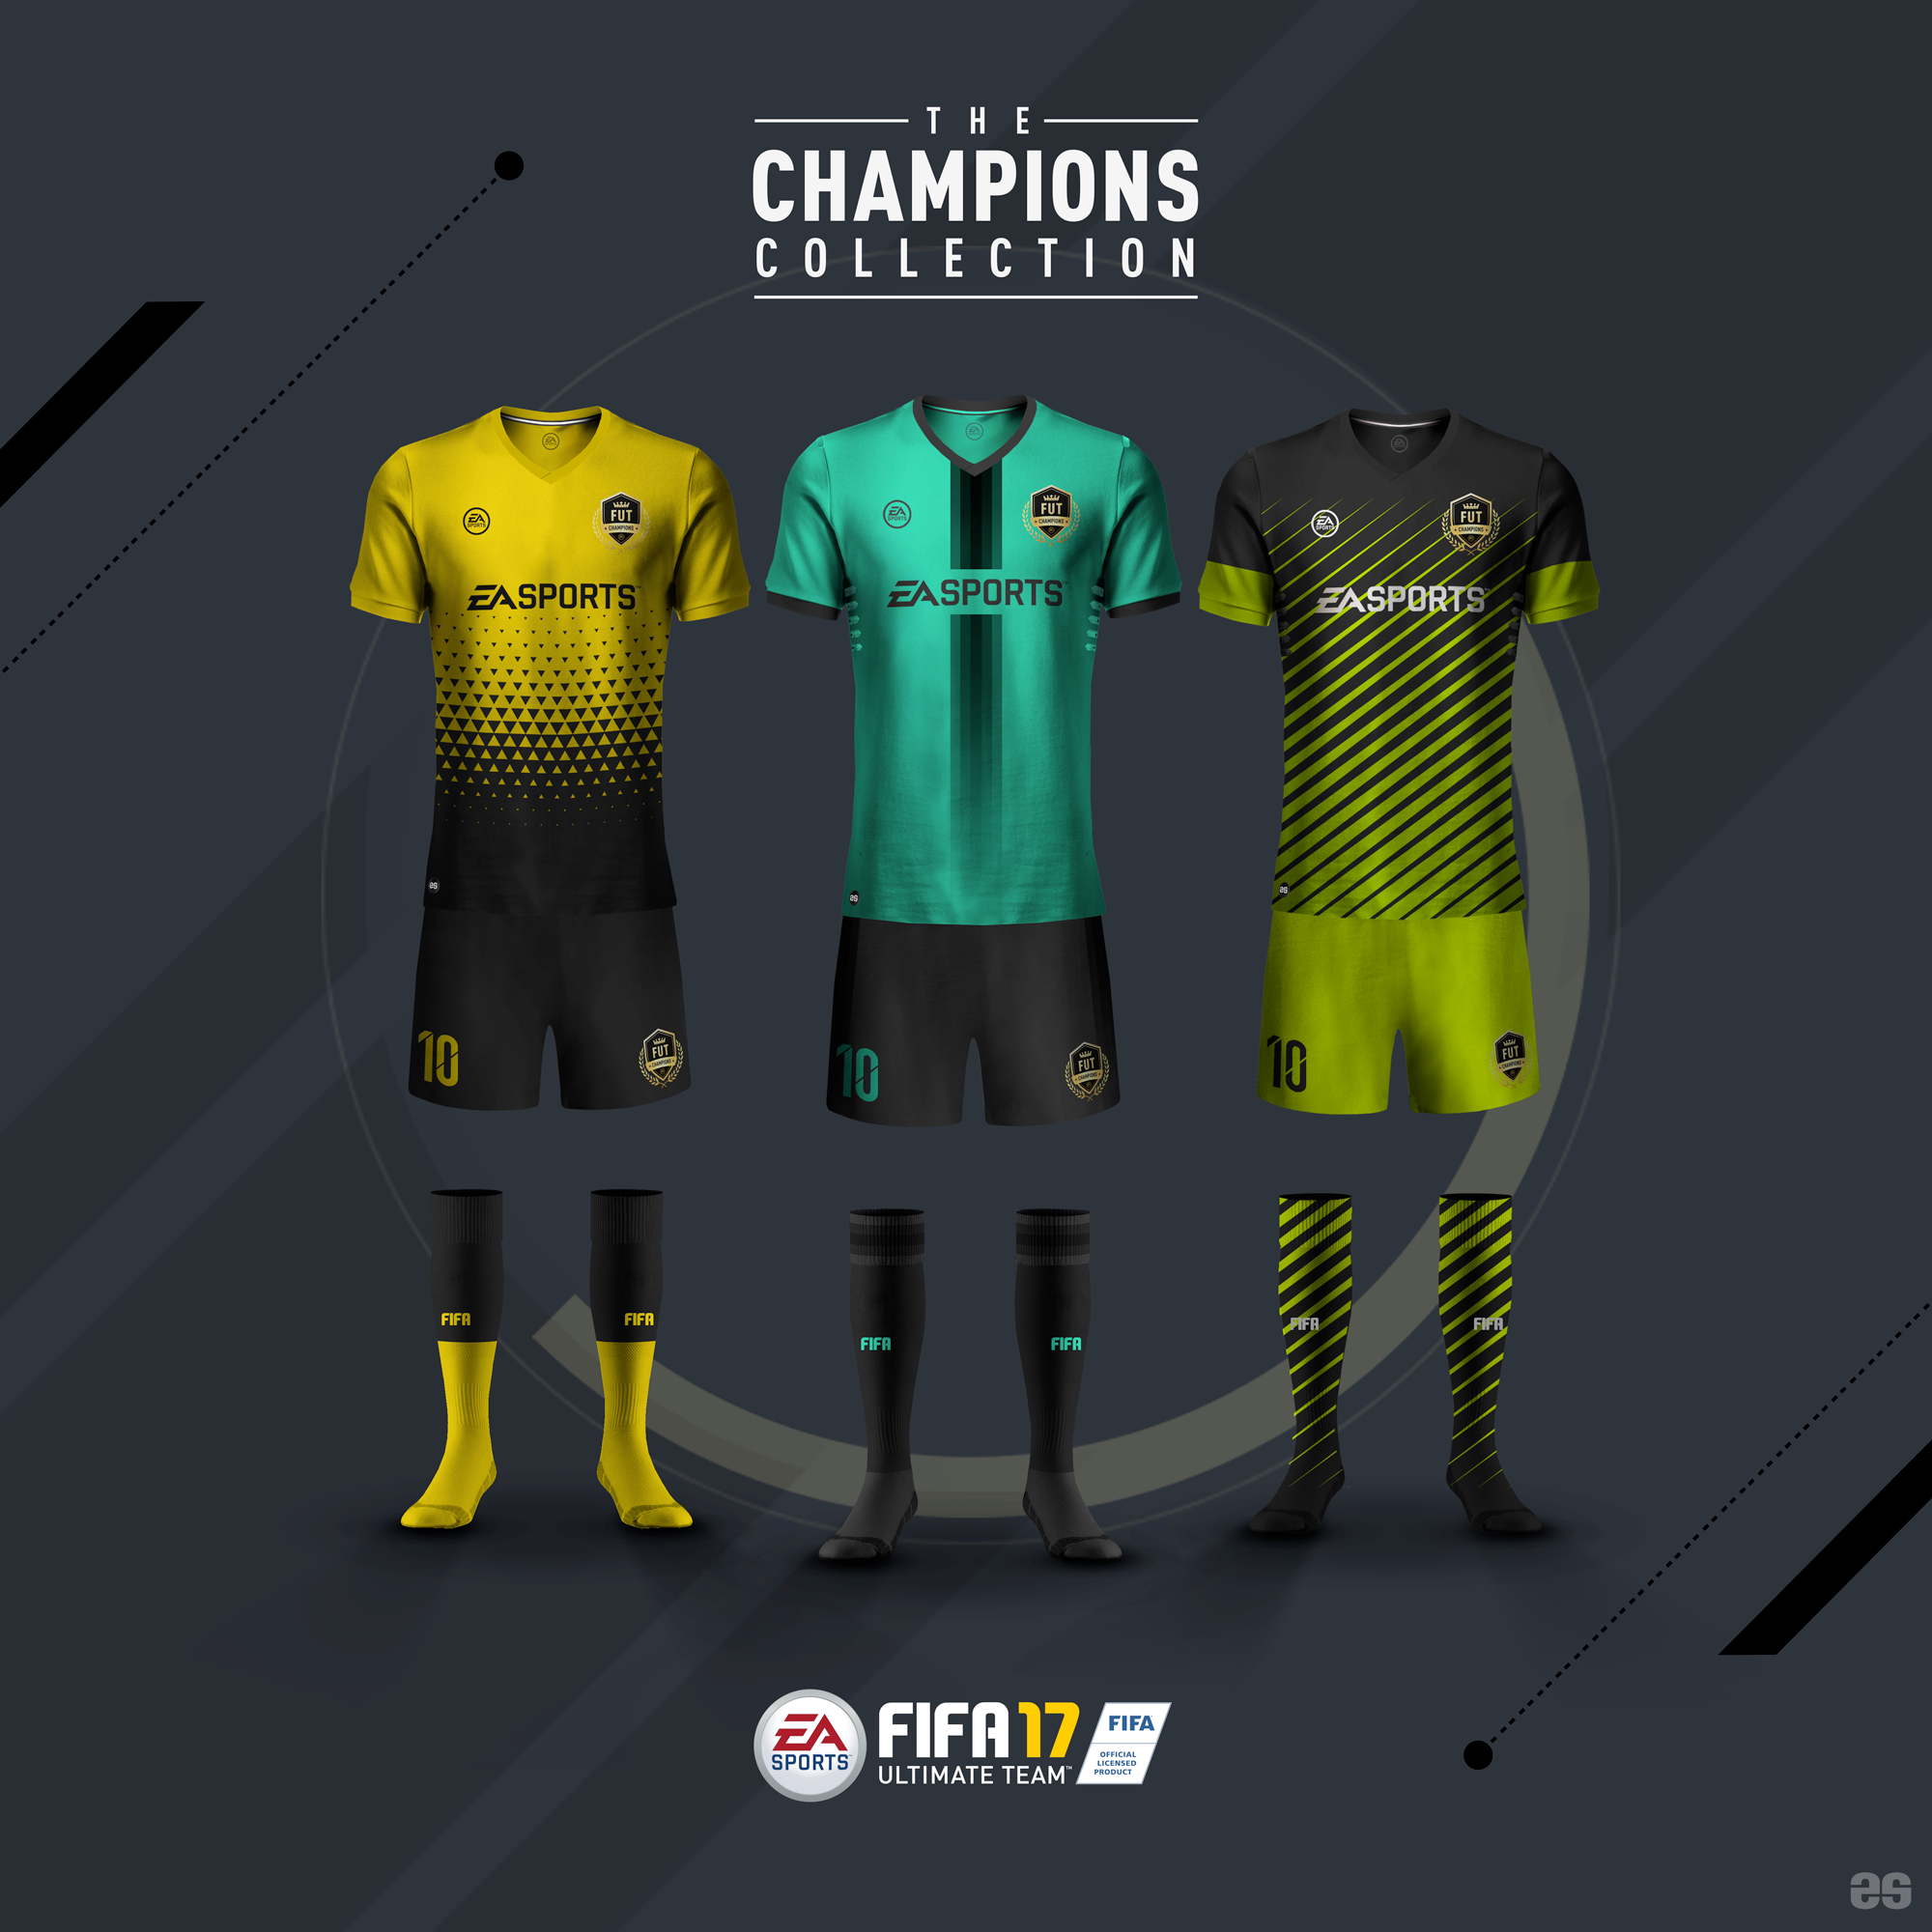 THE-CHAMPIONS-COLLECTION-3B